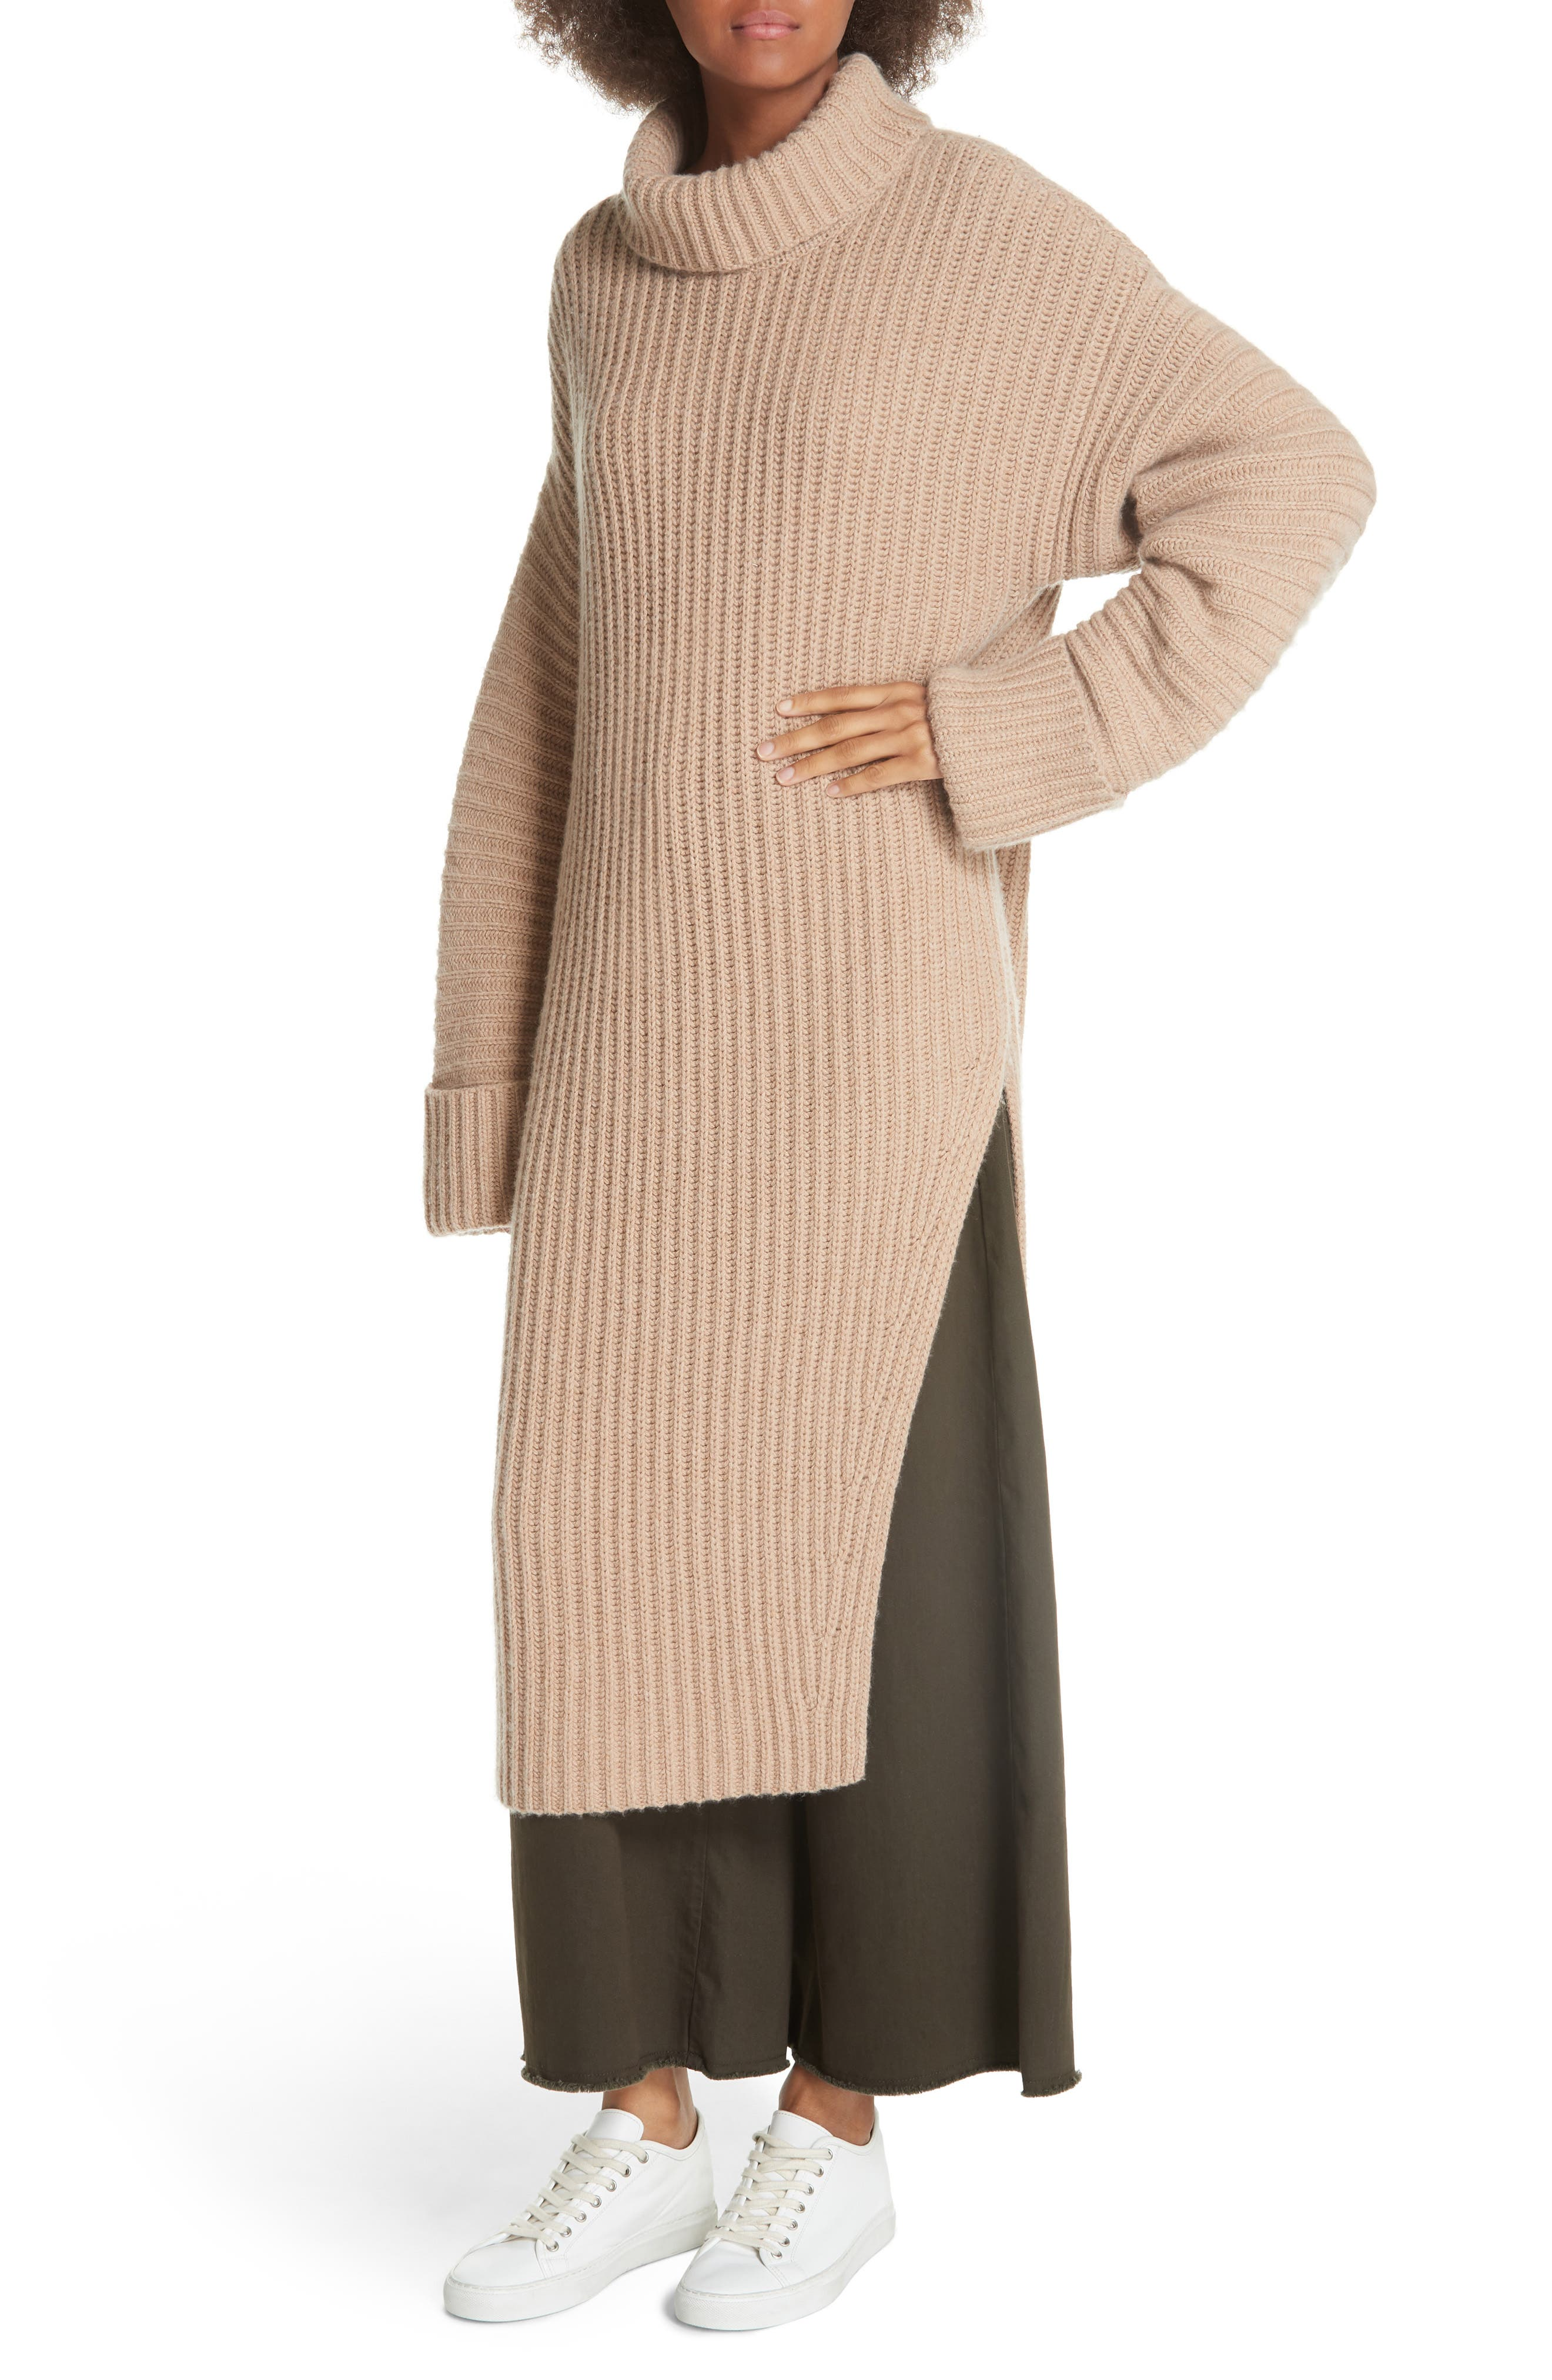 ELIZABETH AND JAMES,                             Mae Wool & Cashmere Sweater,                             Alternate thumbnail 4, color,                             250